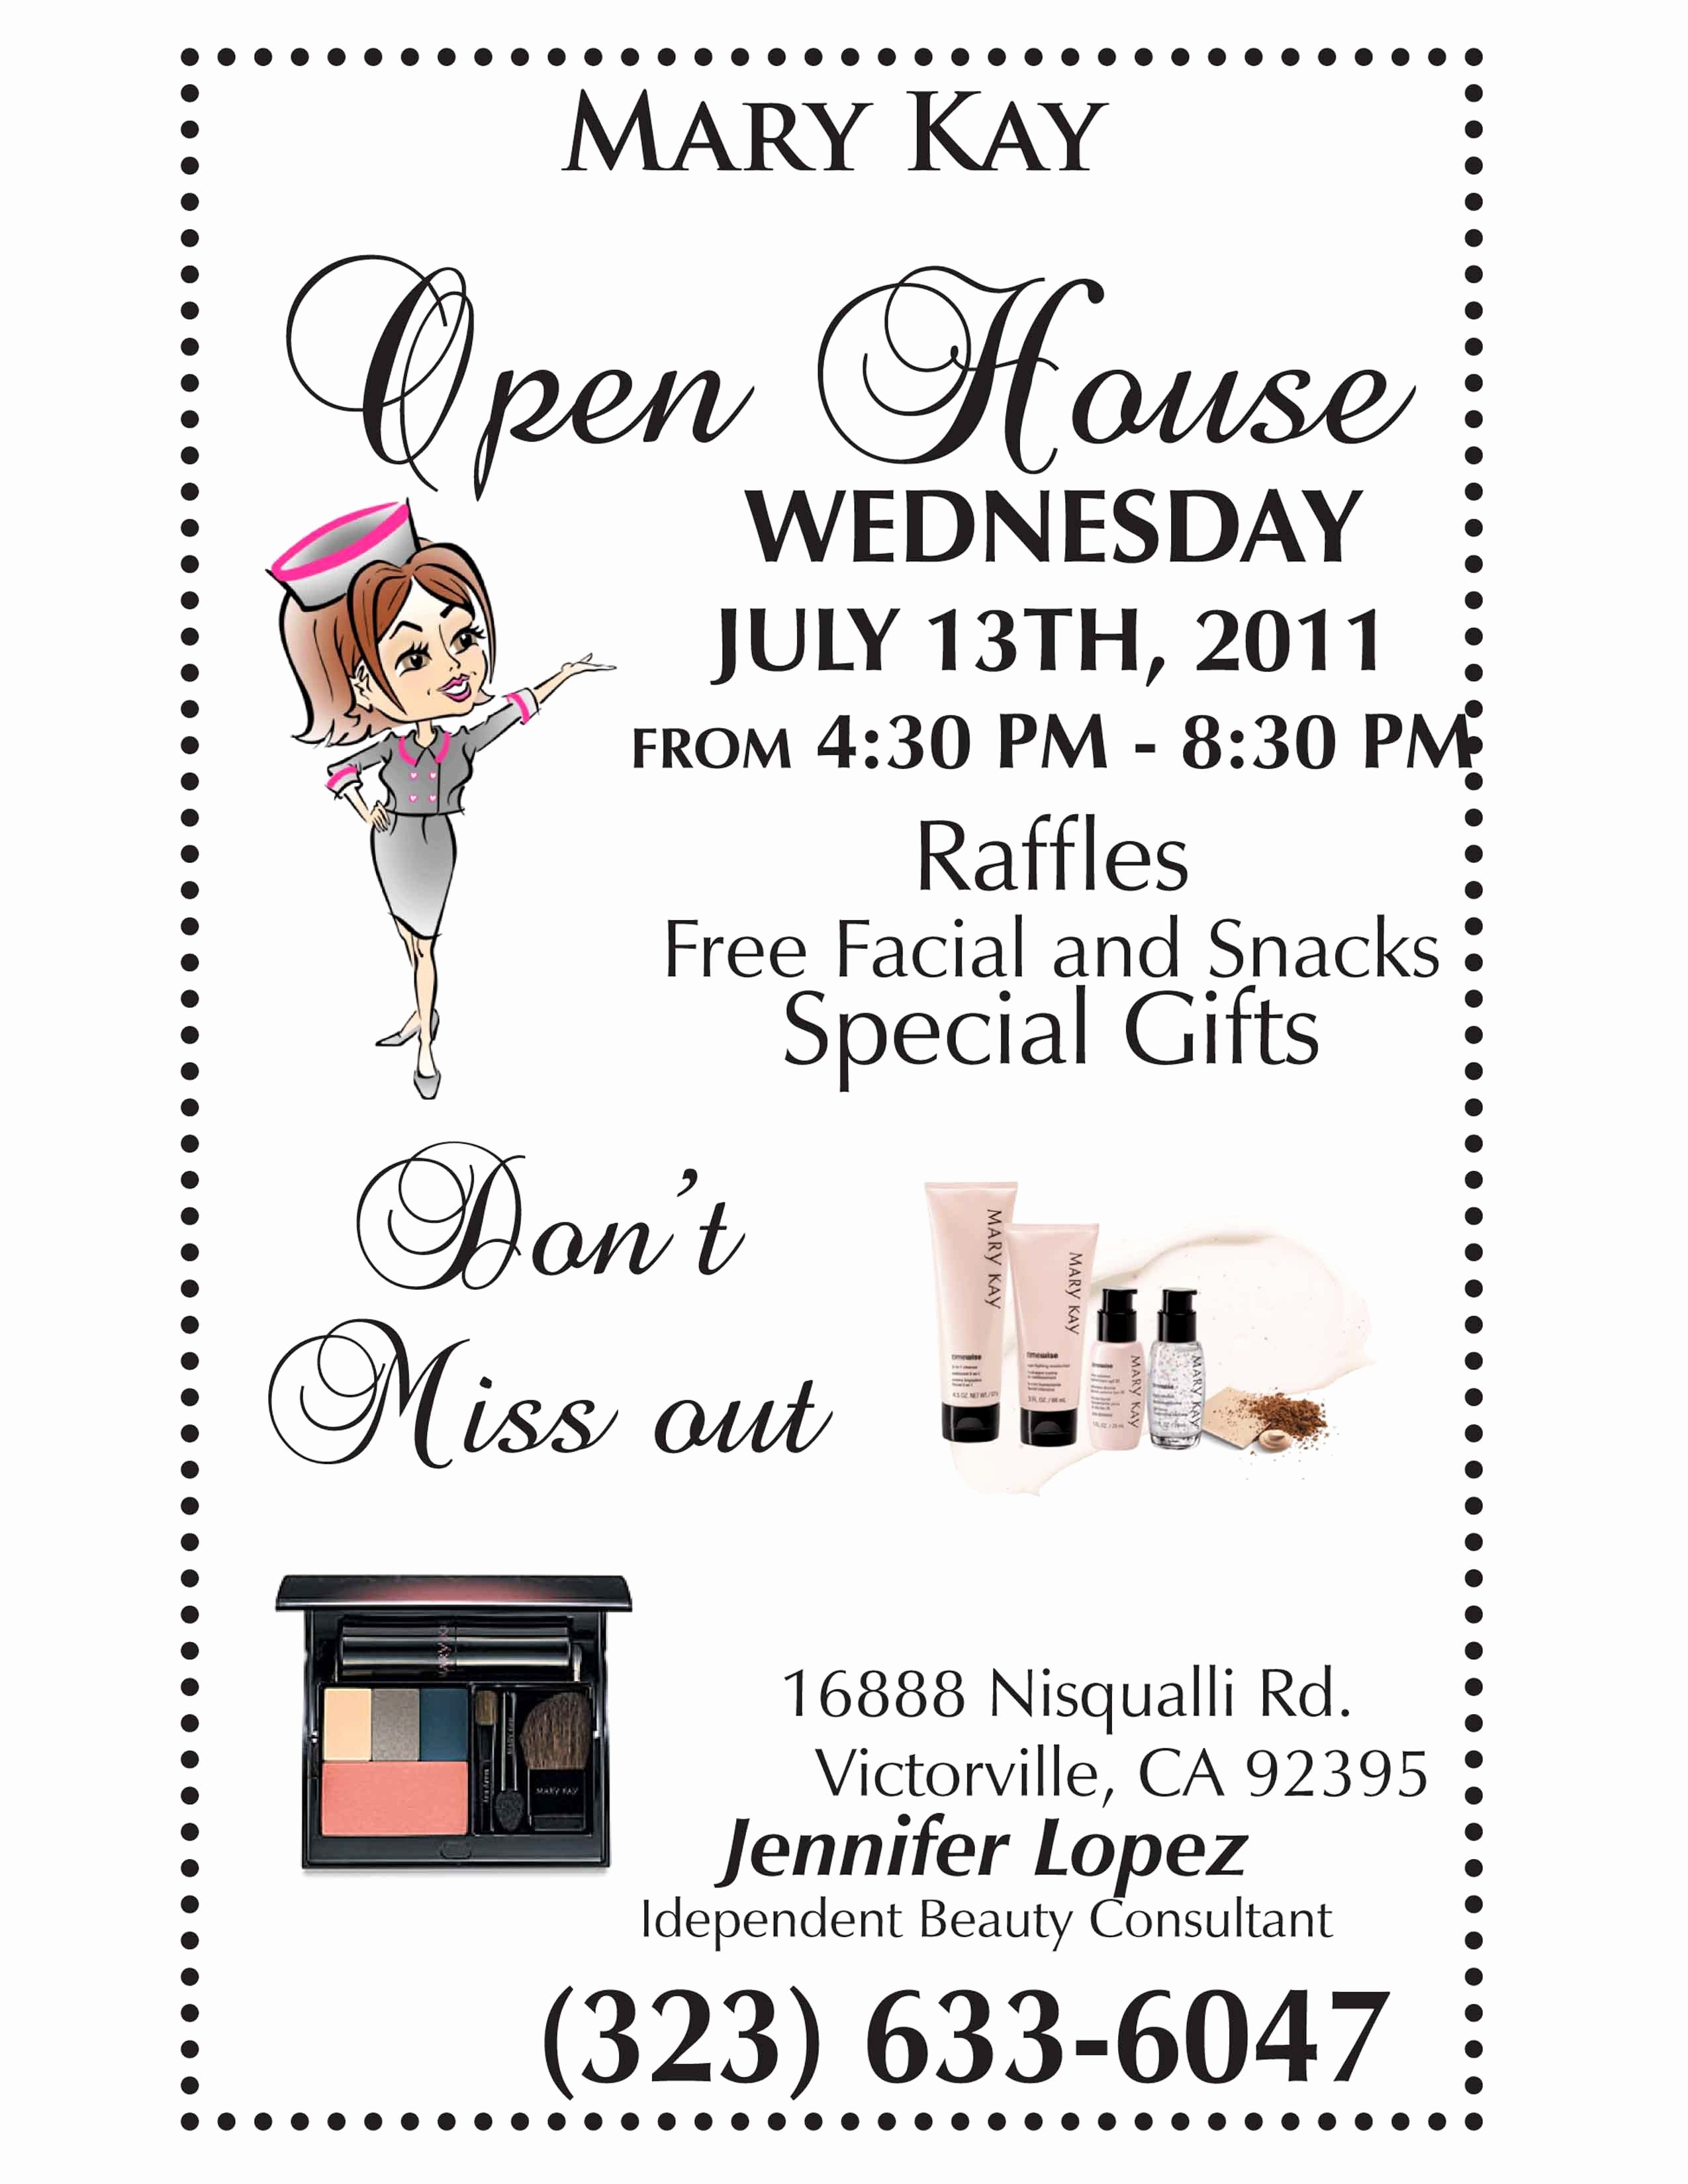 Mary Kay Invitations Template New Mary Kay Open House Flyer Template Google Search